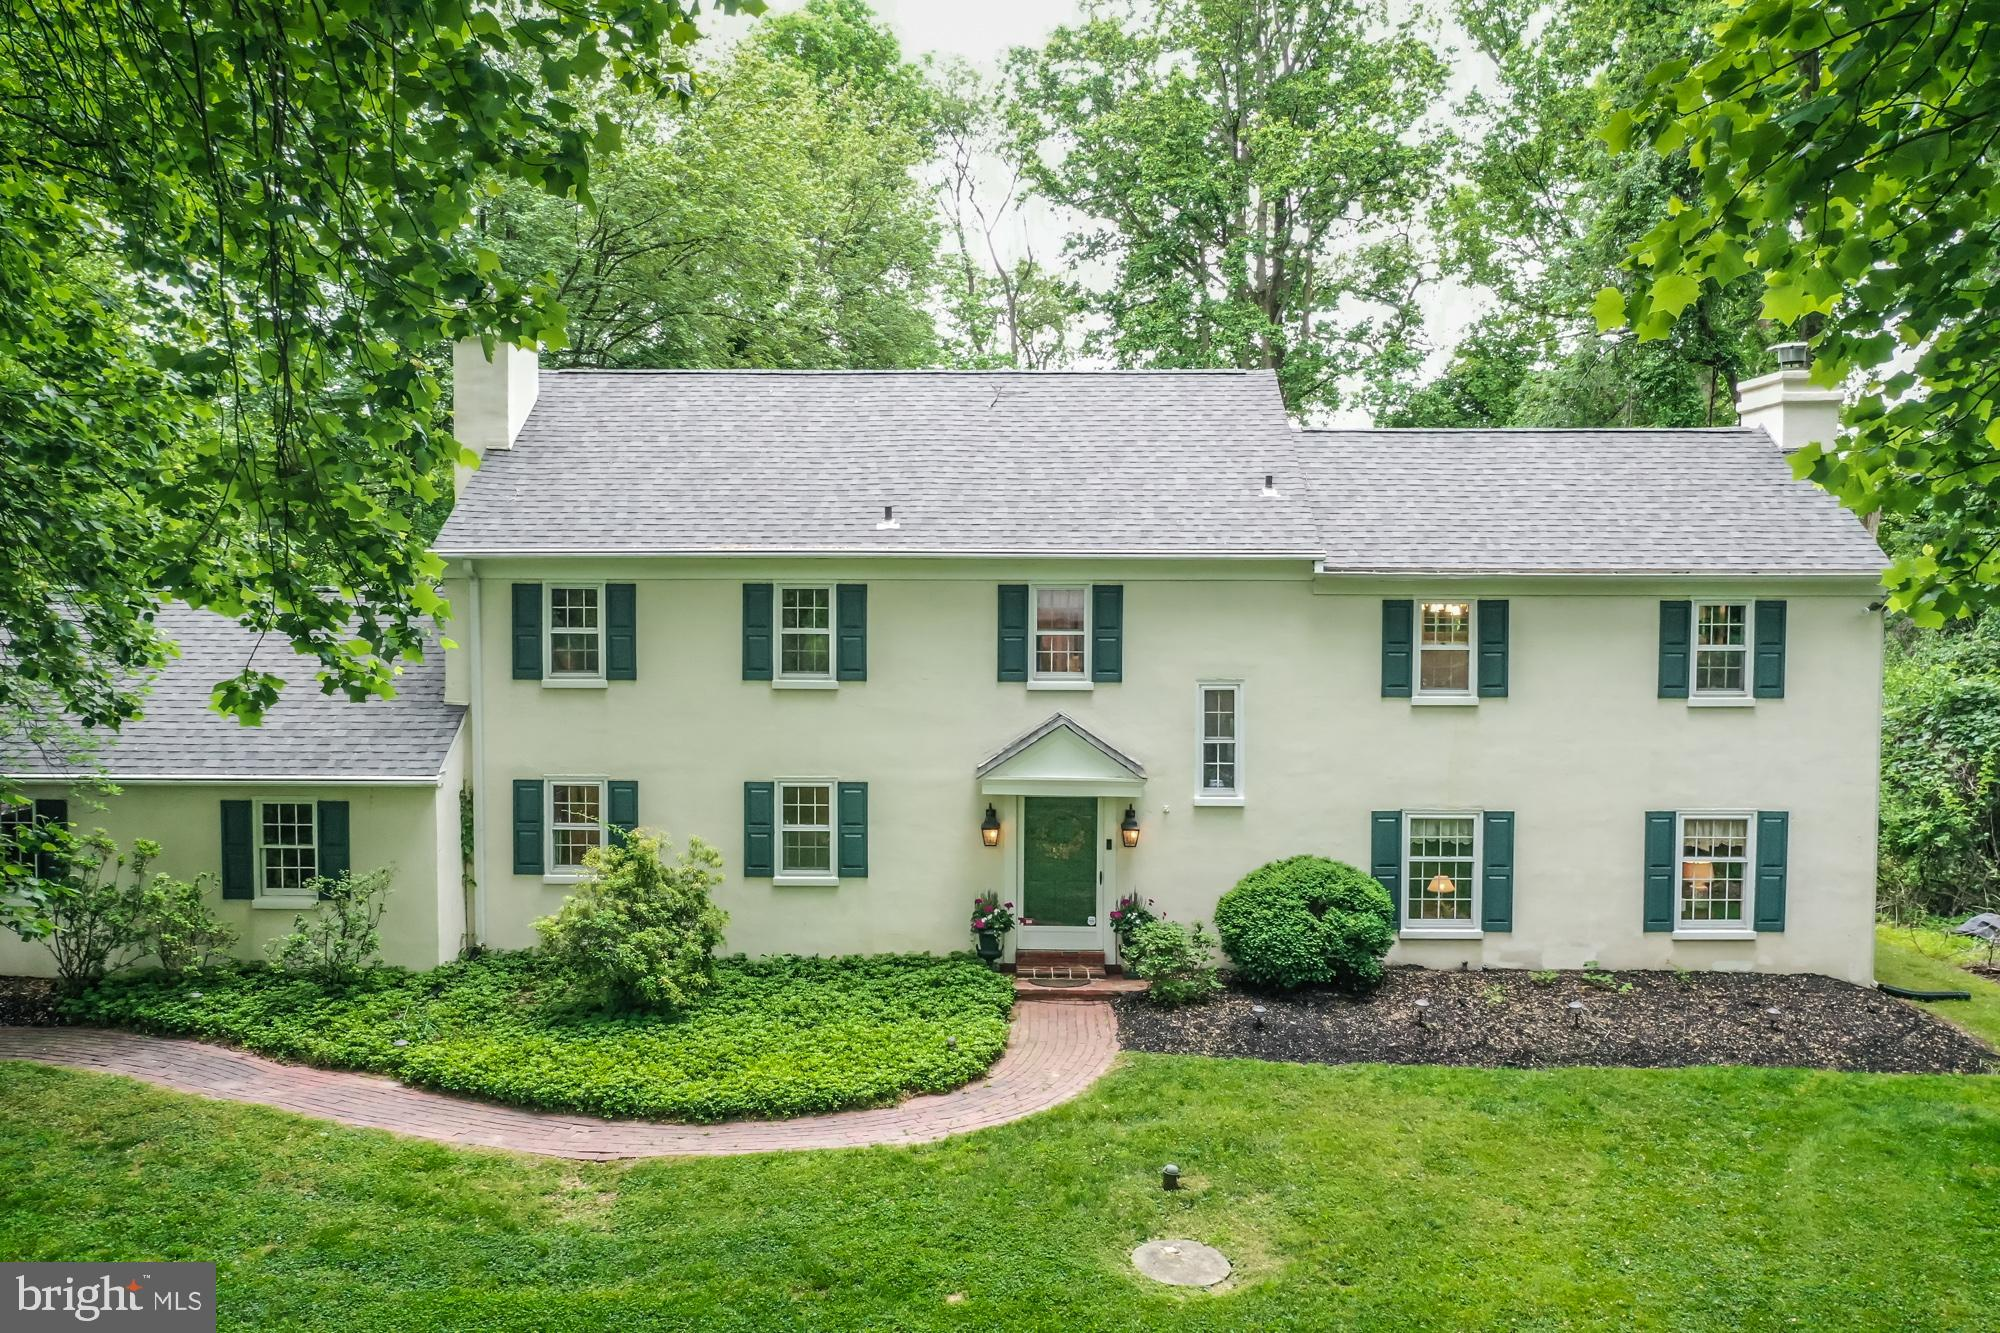 Looking for 4 Bedrooms, 2 1/2, Baths, on a 2  acre level lot with a cul-de-sac street? Here it is, a Thornbury, Chester County Gem! This lovely home has a gracious Foyer, Formal Living Room with a Fireplace & Built-in Wet Bar.  The Dining Room has a Corner China Cupboard.  The Kitchen is the heart of this home, with Cherry Cabinets, Double Wall Ovens (SC, Conventional, & Convection), Cooktop, DW, and serene views of the back yard.  The Laundry/Mud Room provides garage and Deck access.  The Kitchen,  Powder Room, & Laundry/Mud Room have Terracotta Tile Floors.  All other first floor rooms have pegged, random width hardwood floors.  Step down from the Foyer to the large Family Room with a Slate surround Fireplace. There are plenty of windows for natural light, and French doors to the Screened Porch where you can enjoy the outdoors, while you read, rest, or sip an afternoon tea.   Upstairs, to the right, a  Master Bedroom and bath enjoy their own space, with light and views of the front and back yard.  Three more bedrooms and a hall bath are to the left.  Two of these bedrooms are very large. The 4th Bedroom can be used as a Guest room/office.  A Queen bed fits with a desk.  Closest to the master, it is perfect for a nursery.  The 2rd floor has random width hardwood floors throughout, except for the bathrooms.  The Basement Rec Room is carpeted and offers additional space to relax, play games, or watch TV.  The utility area and storage are in the unfinished area, and the walkout Bilco doors go to the back yard.  The crawl space offers additional storage.   2 acres offer a big outdoor living space, with lots of opportunities, and additional walking space with Fox Meadow and Penn Oaks right behind the home.  Grill on the Deck overlooking the level, open back yard, with plenty of room for an inground pool one day.  Most of the lot is open, with approximately 3/4 of an acre being wooded.  This is a Smart Home - Two Honeywell smart Electronic Thermostats can be controlled f